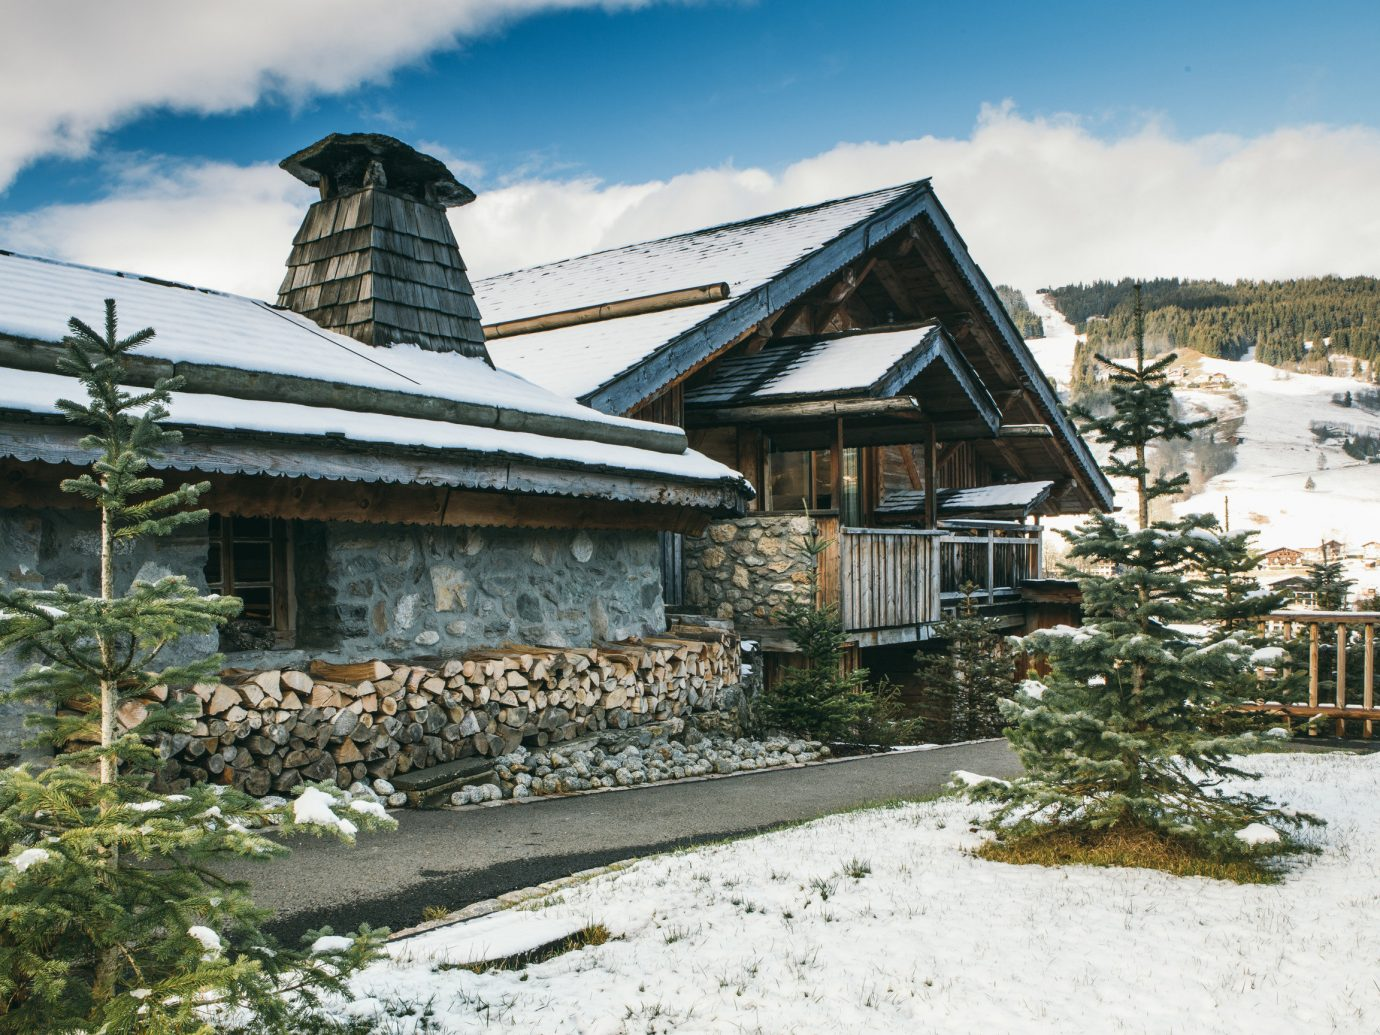 Secret Getaways Trip Ideas sky outdoor building snow Winter home house property cottage tree mountain hut log cabin real estate roof mountain range freezing landscape elevation estate old stone